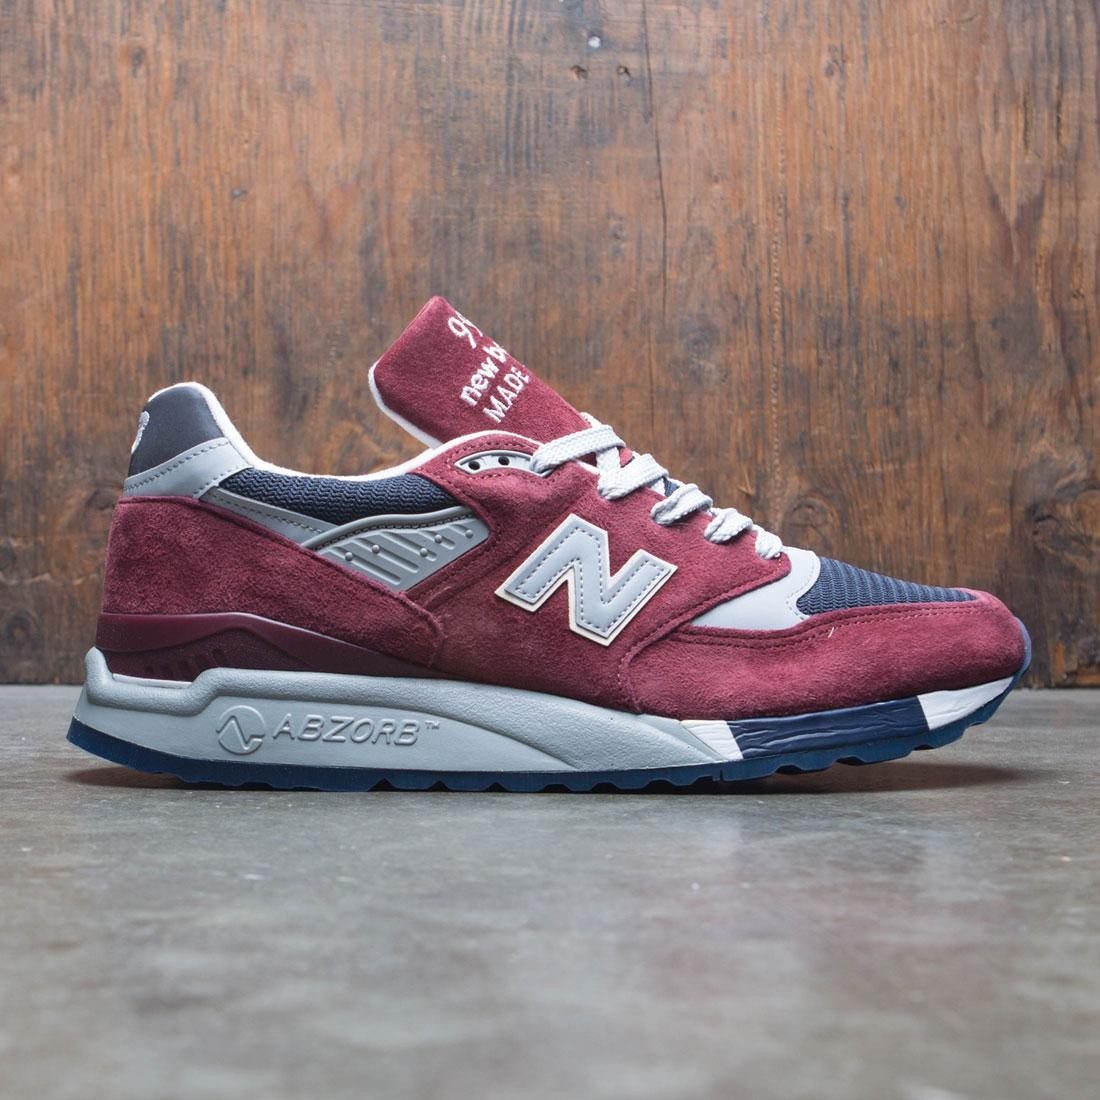 sneakers for cheap d1f0e 1af56 New Balance x J Crew Men 998 Port M998JB1 - Made In USA (burgundy / blue /  grey / white)